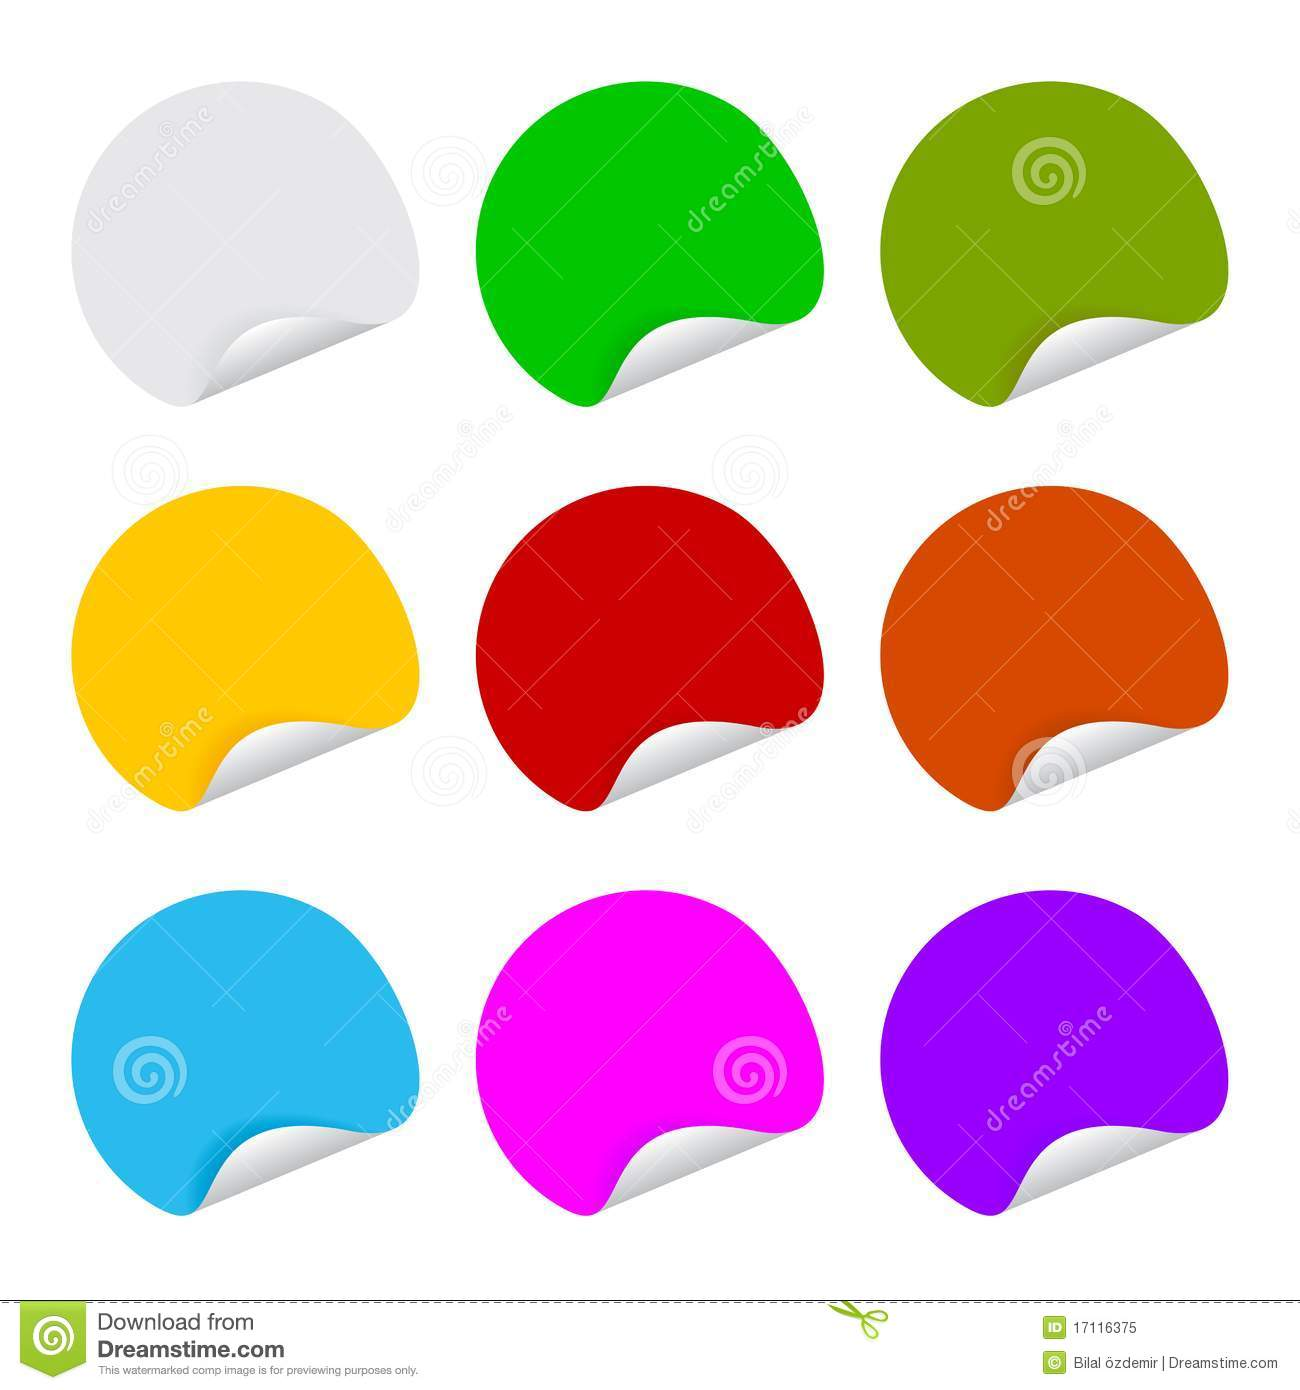 9 Color Adhesive Label Blank Round Stock Vector - Illustration of ...